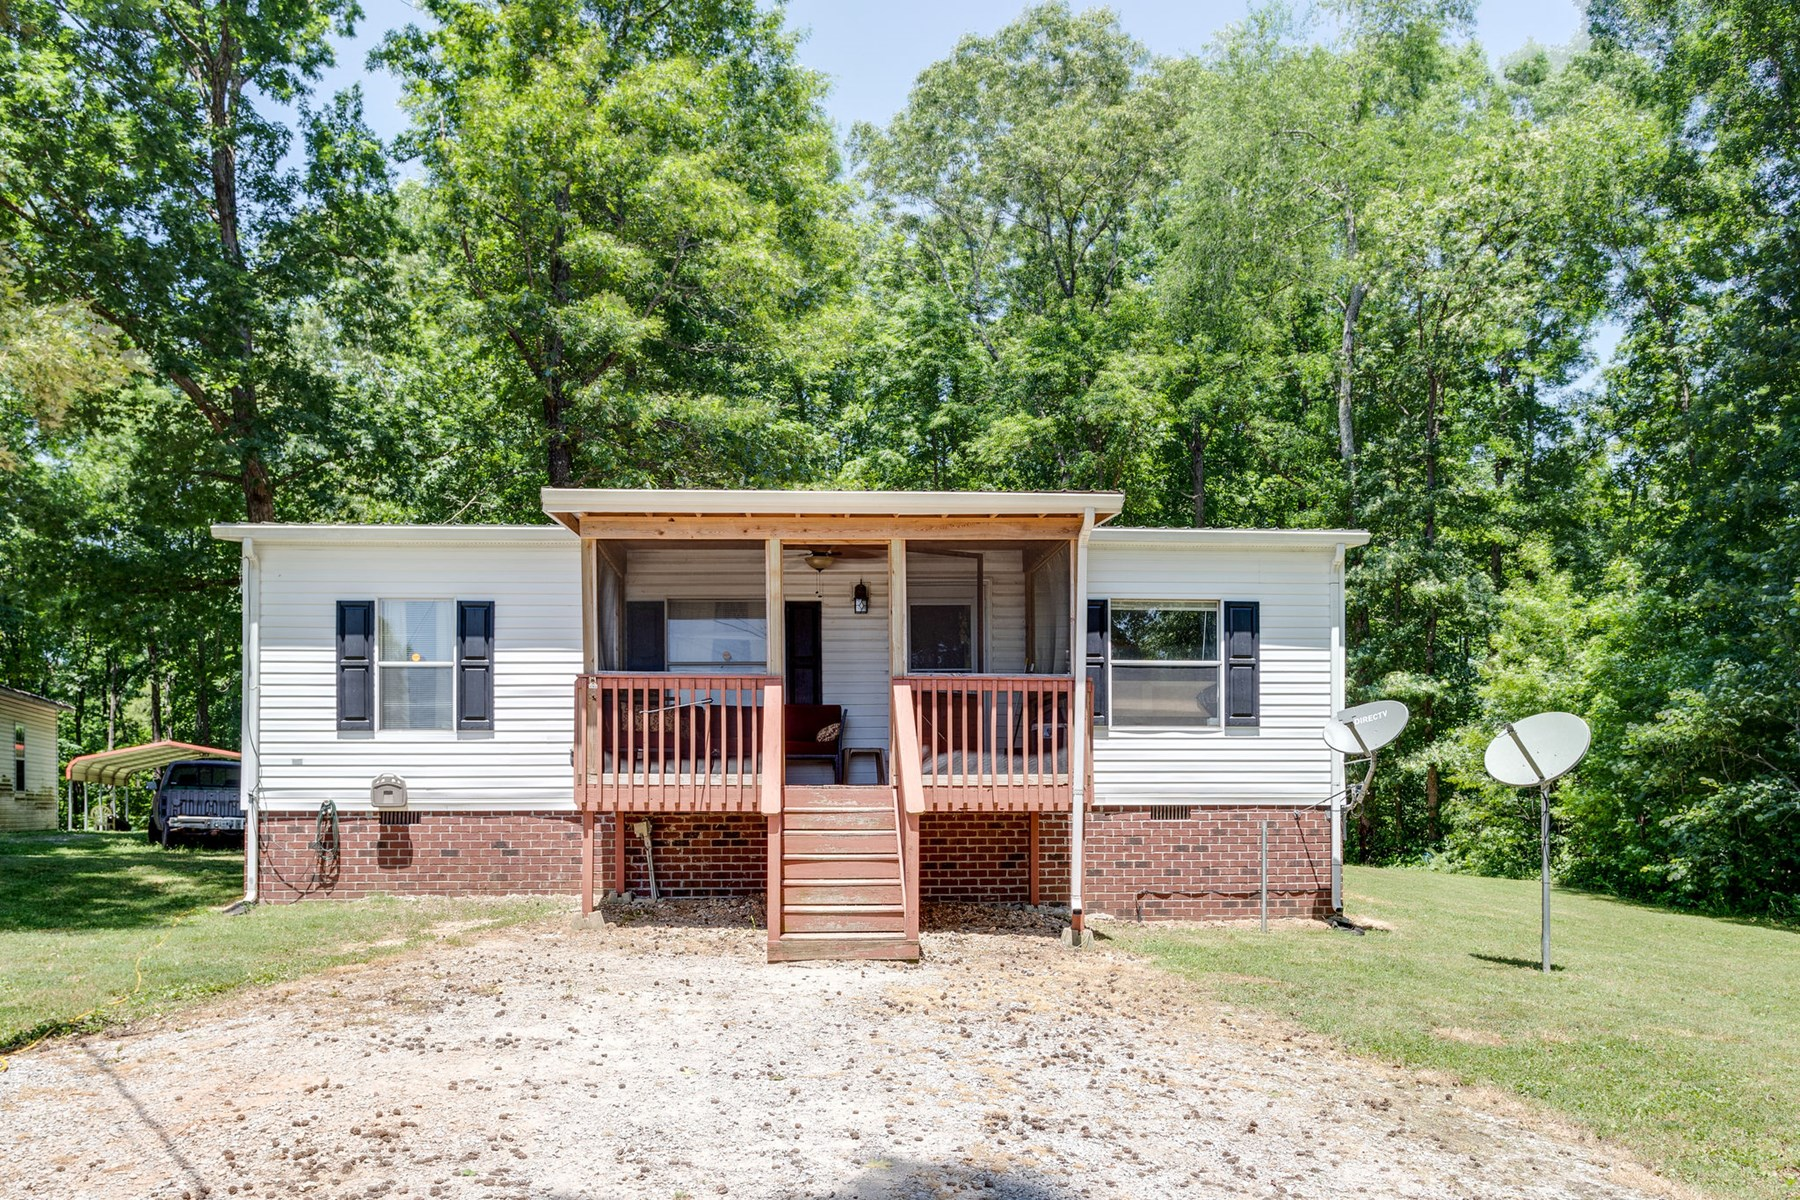 Cute & Comfortable Home in Giles County, Tennessee